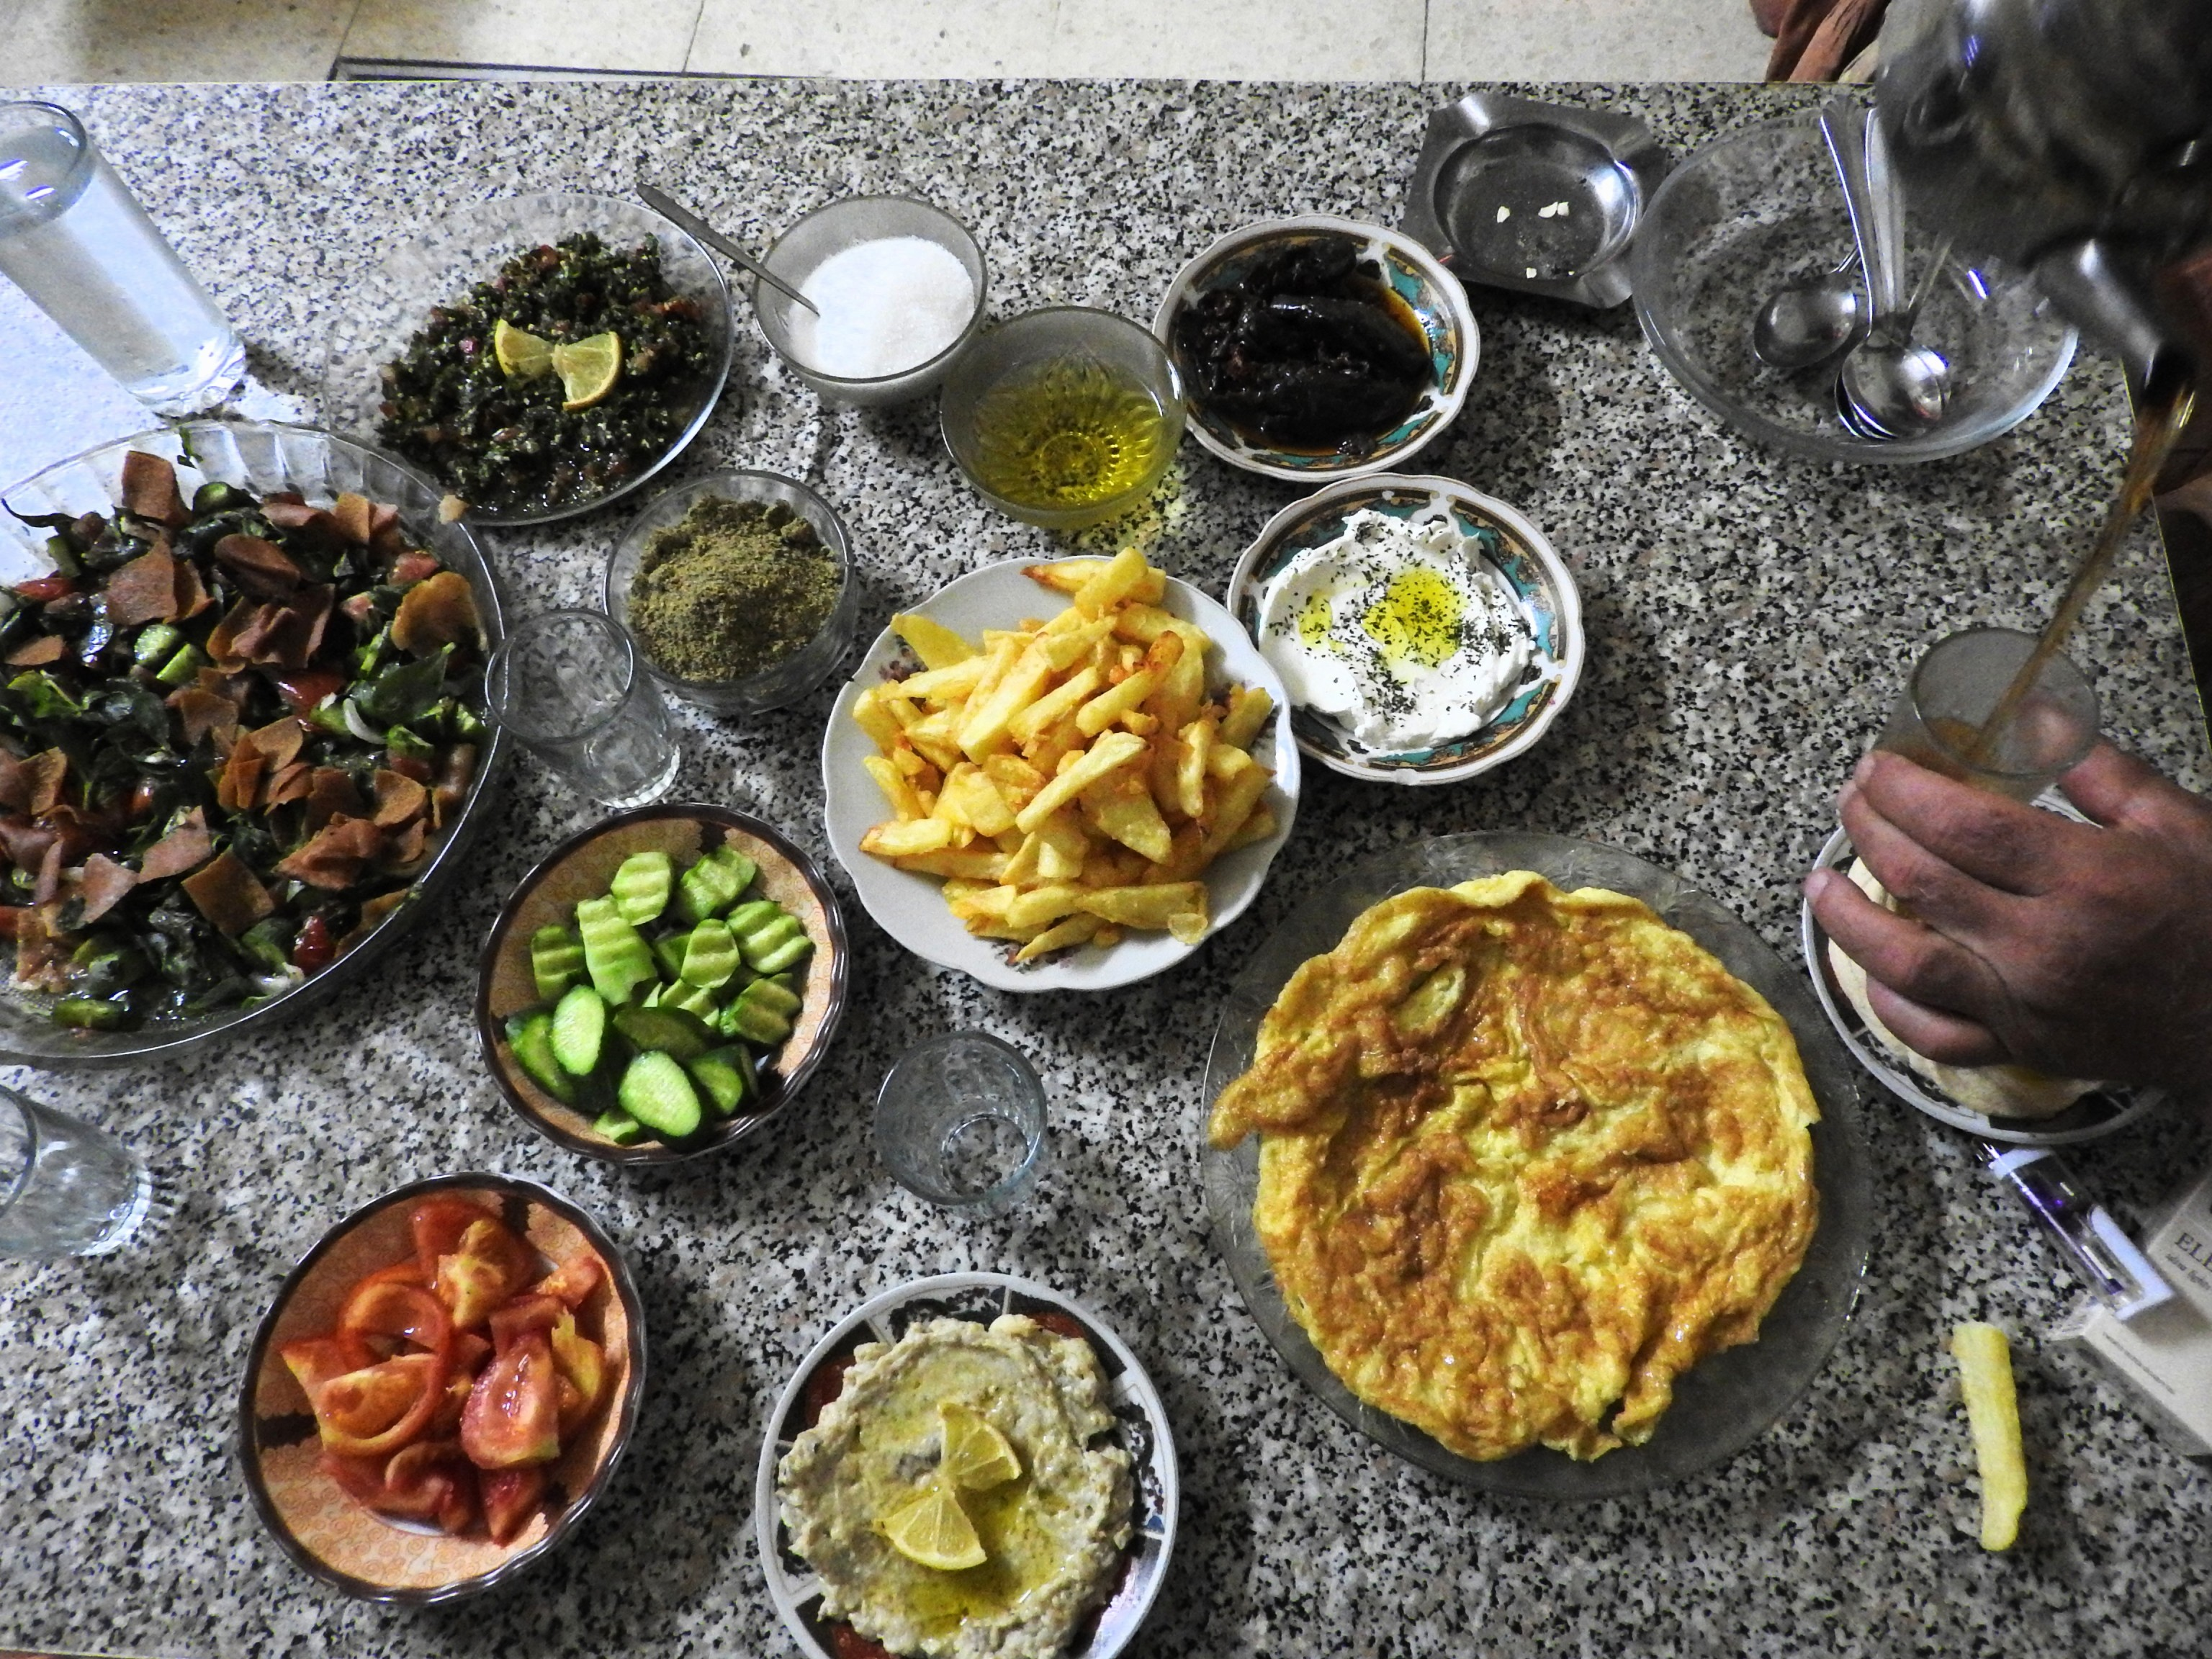 A shared meal with local family in the Old City. After over five years of the war on Syria, prices for all basic goods have risen dramatically, while incomes remain the same or shattered. The Western sanctions on the Syria worsen the situation, hurting the Syrian people and social services the most.